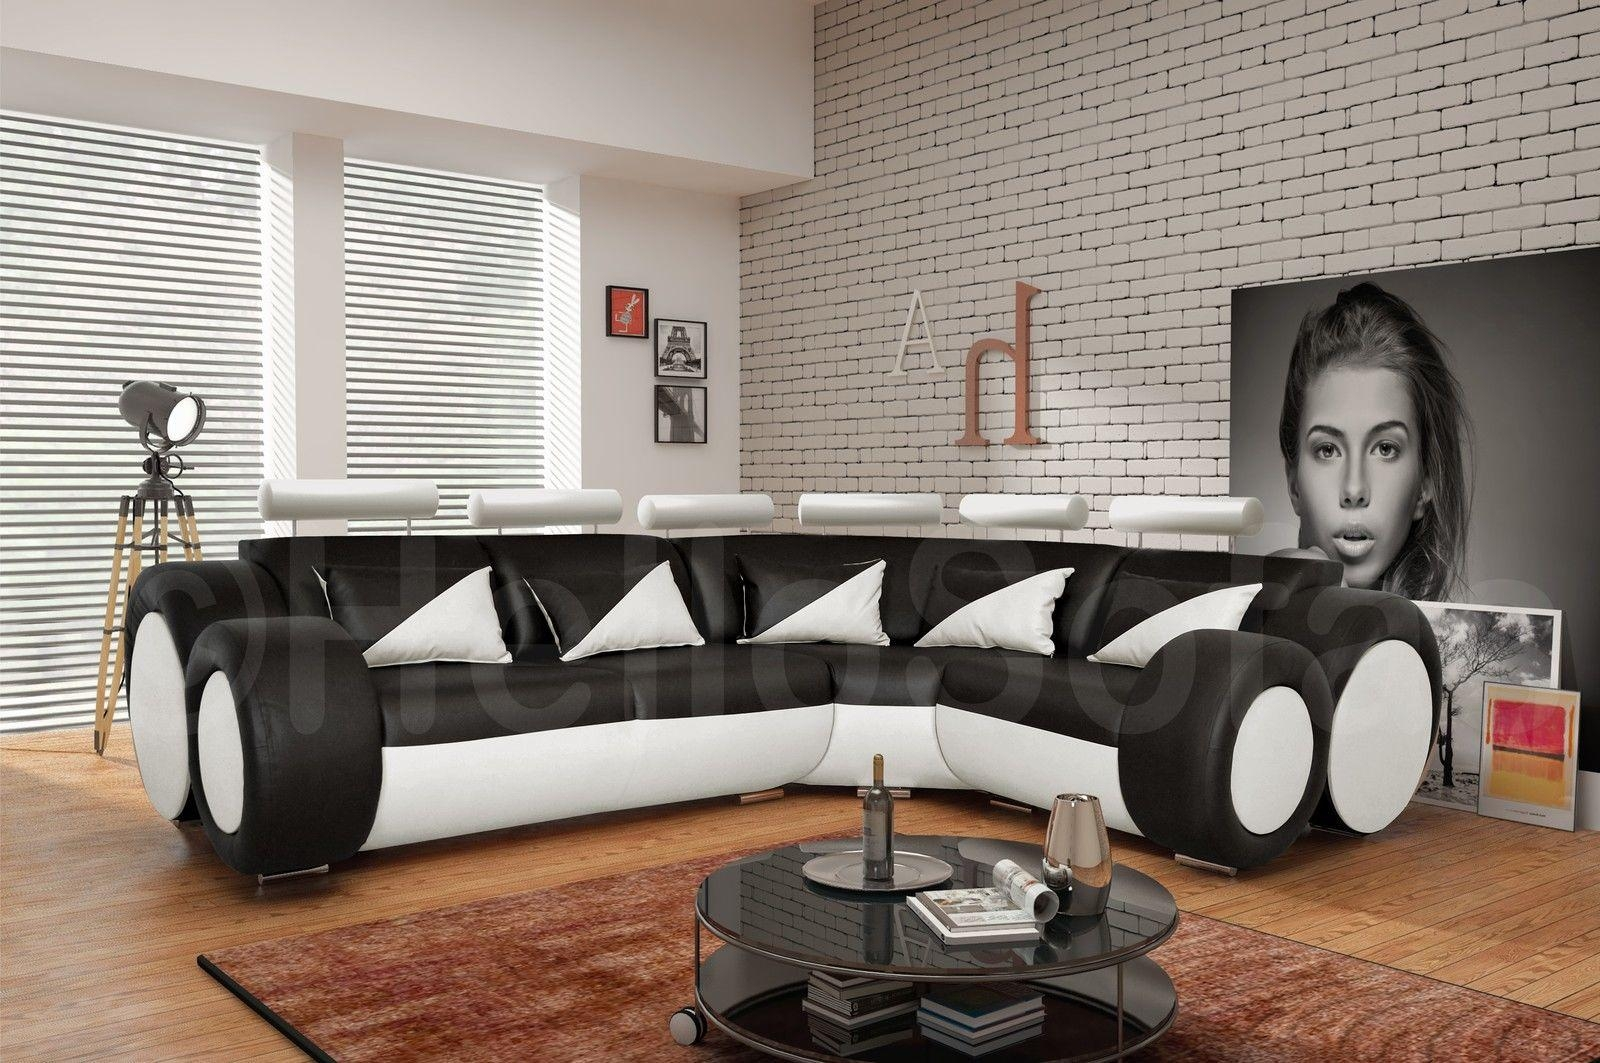 Large Corner Sofa In Black Seats White Sofas Fashion With Images With Large Black Leather Corner Sofas (Image 13 of 22)